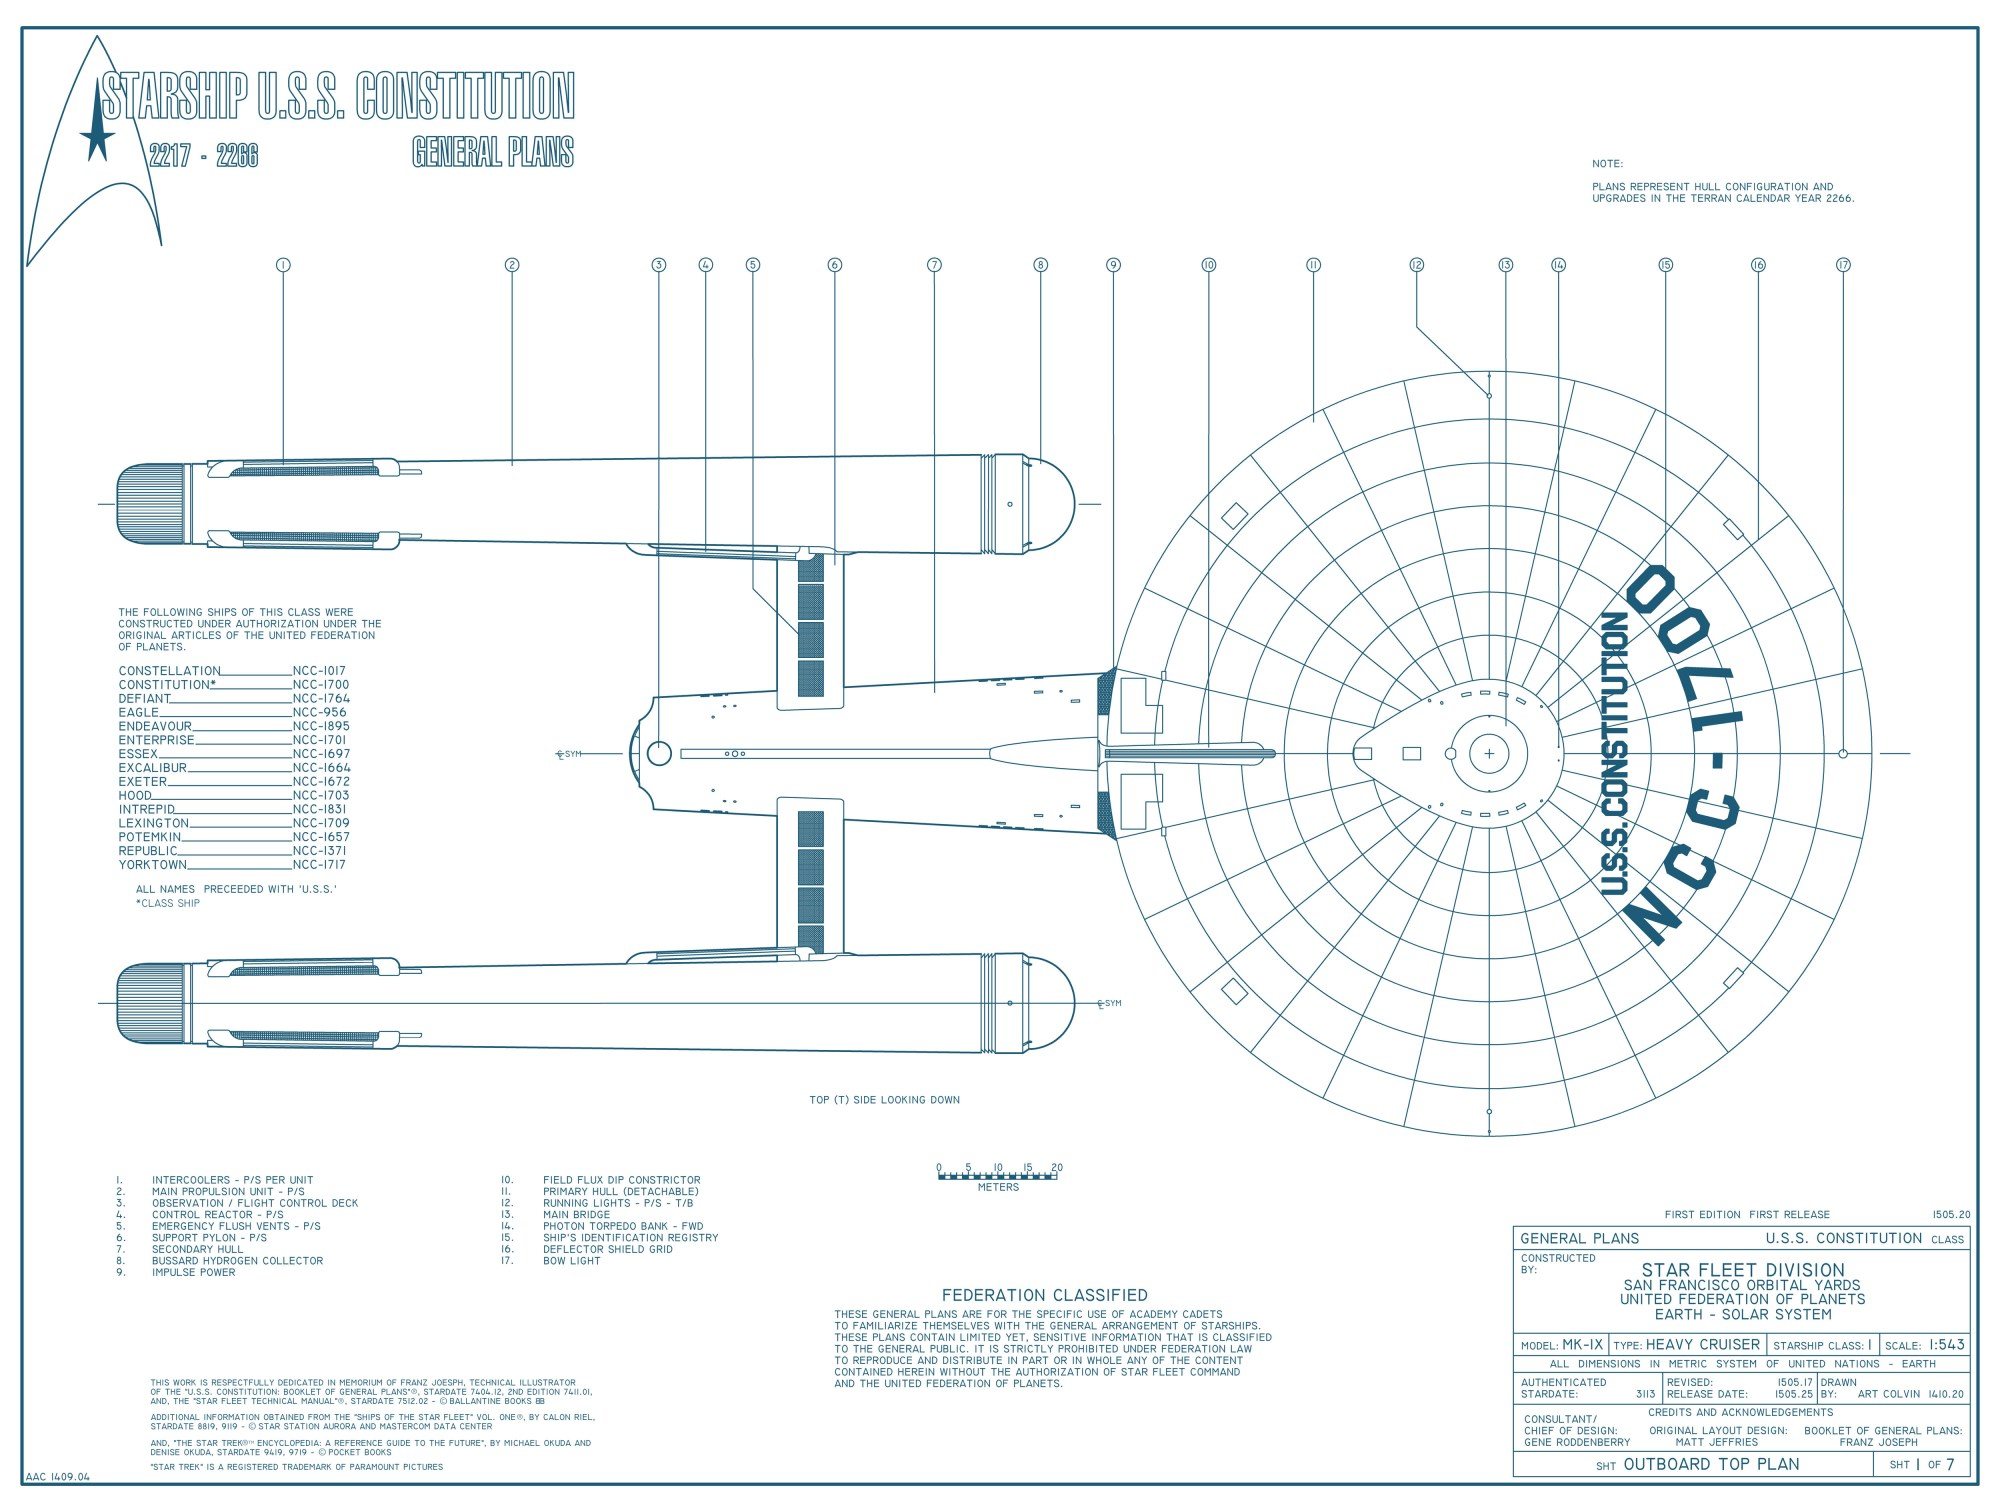 hight resolution of starship u s s constitution ncc 1700